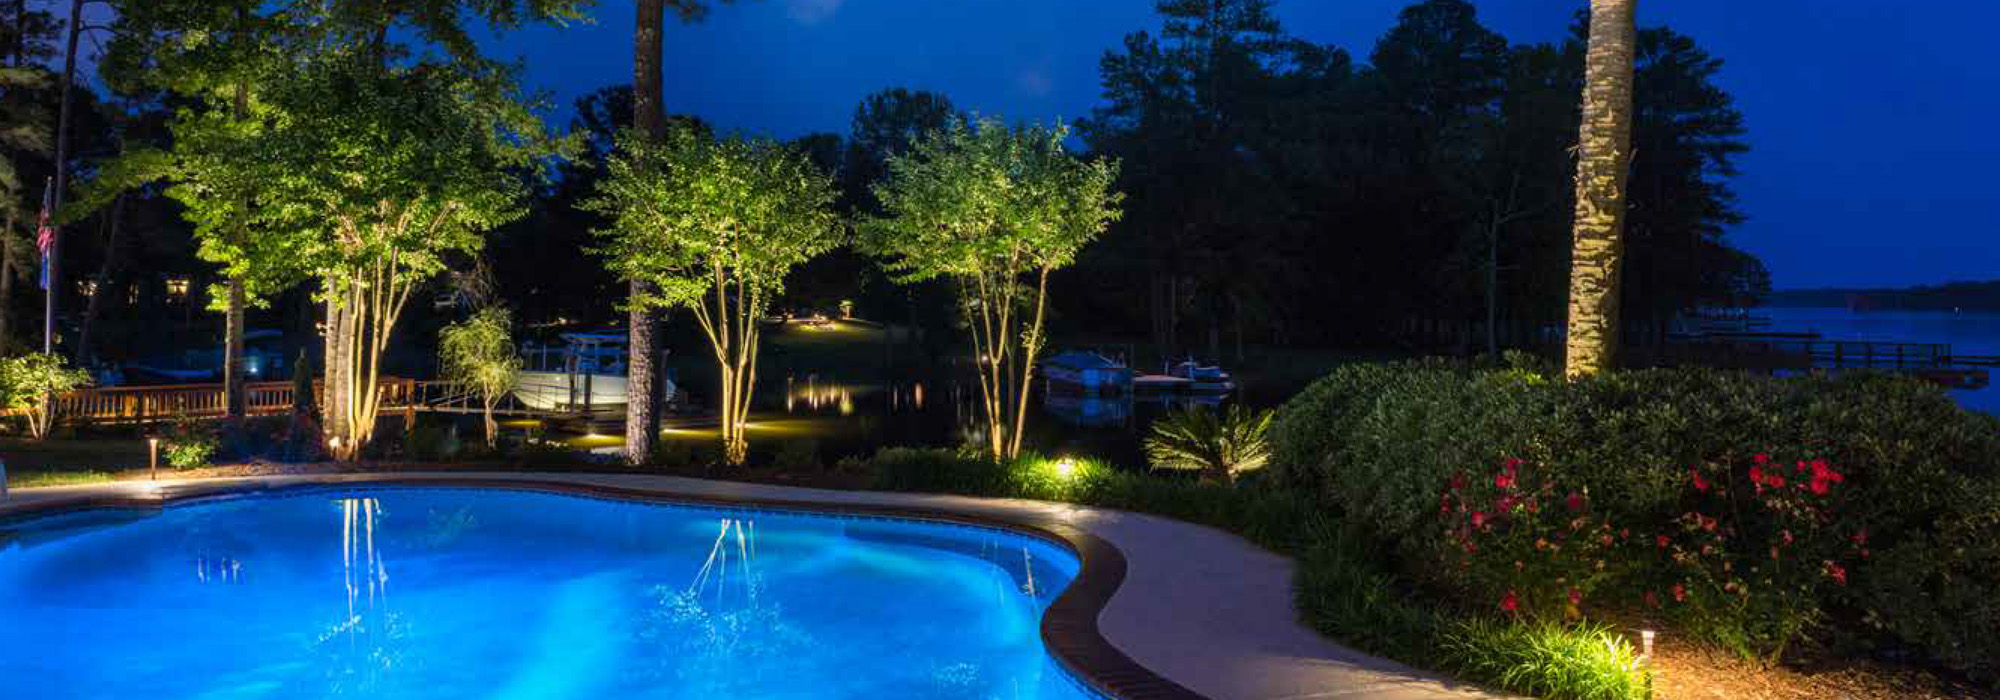 Read Our Blog | Outdoor Lighting Perspectives